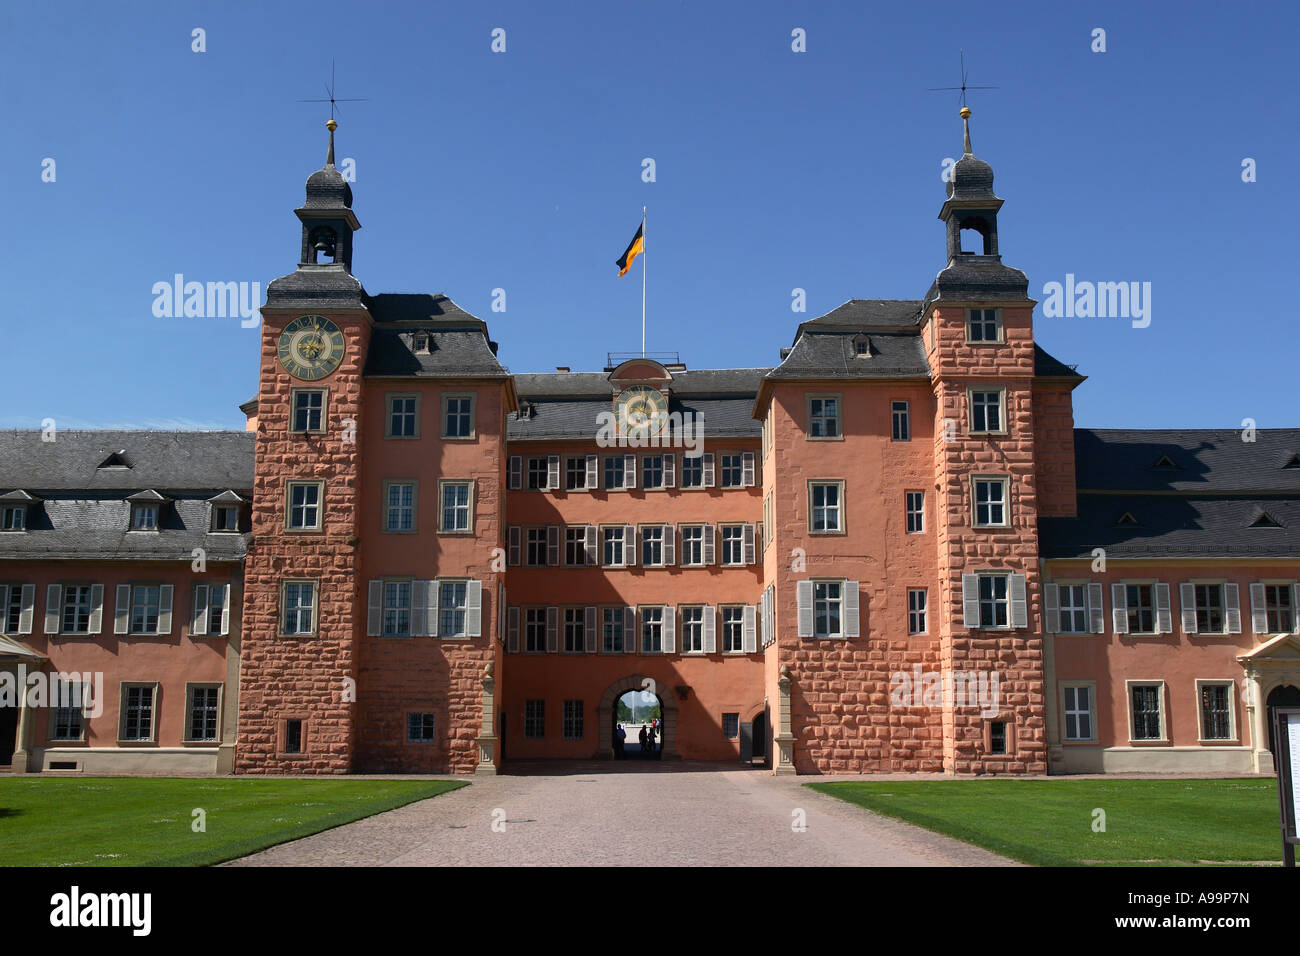 The baroque palace at Schwetzingen near to Heidelberg in Germany - Stock Image